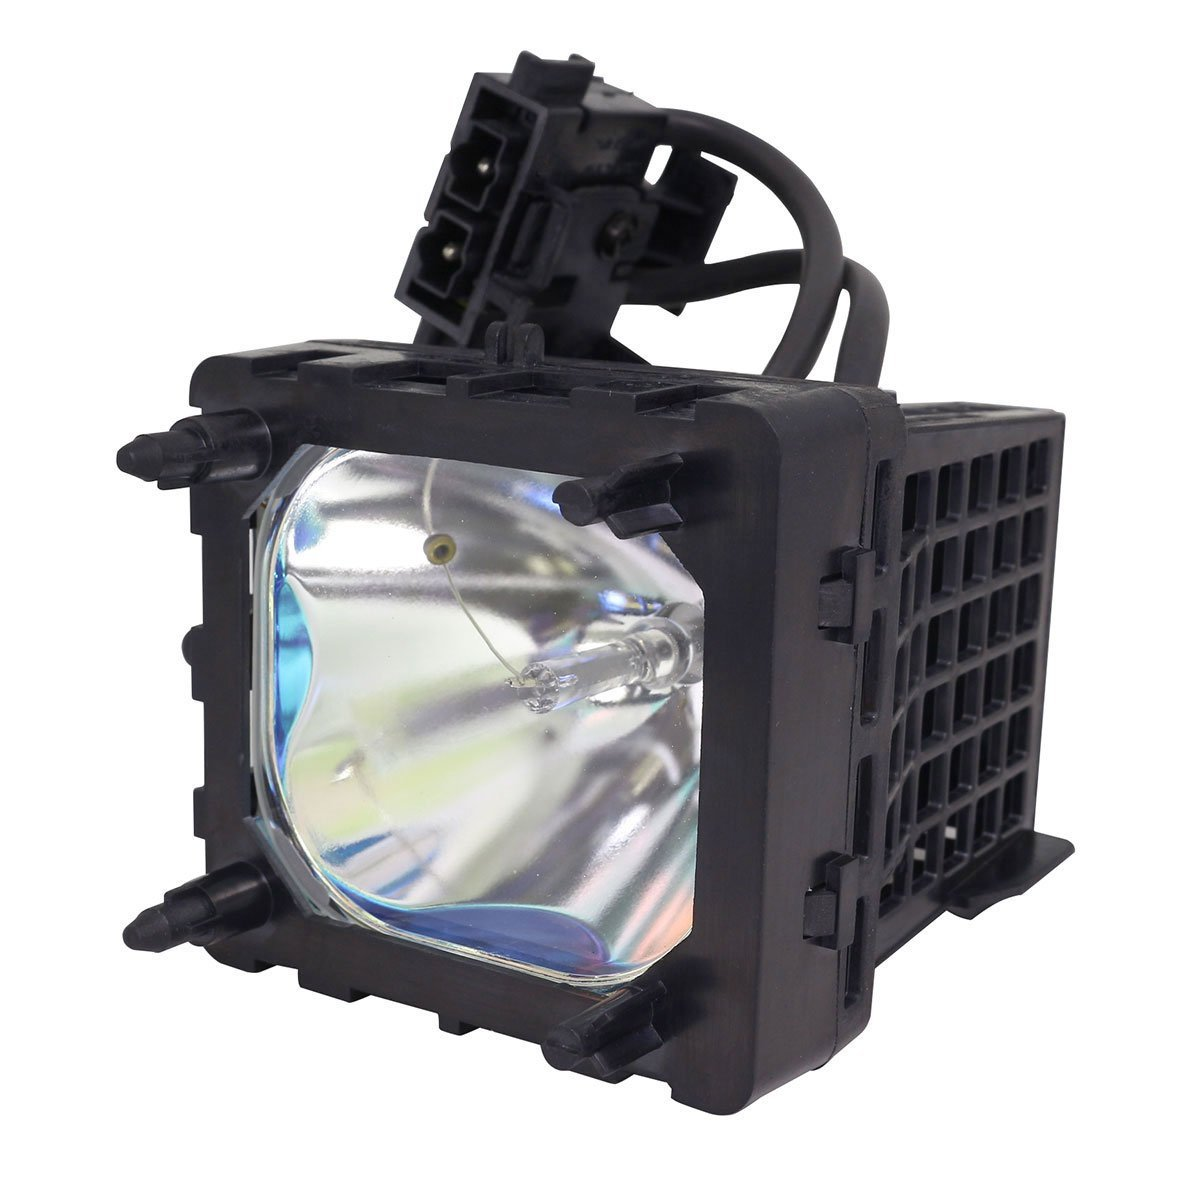 XL-5200 TV PROJECTOR REPLACEMENT LAMP for SONY KDS-50A2000/SONY 50A2020/SONY 50A3000/SONY 55A2000/SONY 55A2020/SONY 55A3000/SONY 60A2000/SONY 60A2020/SONY 60A3000 With HOUSING